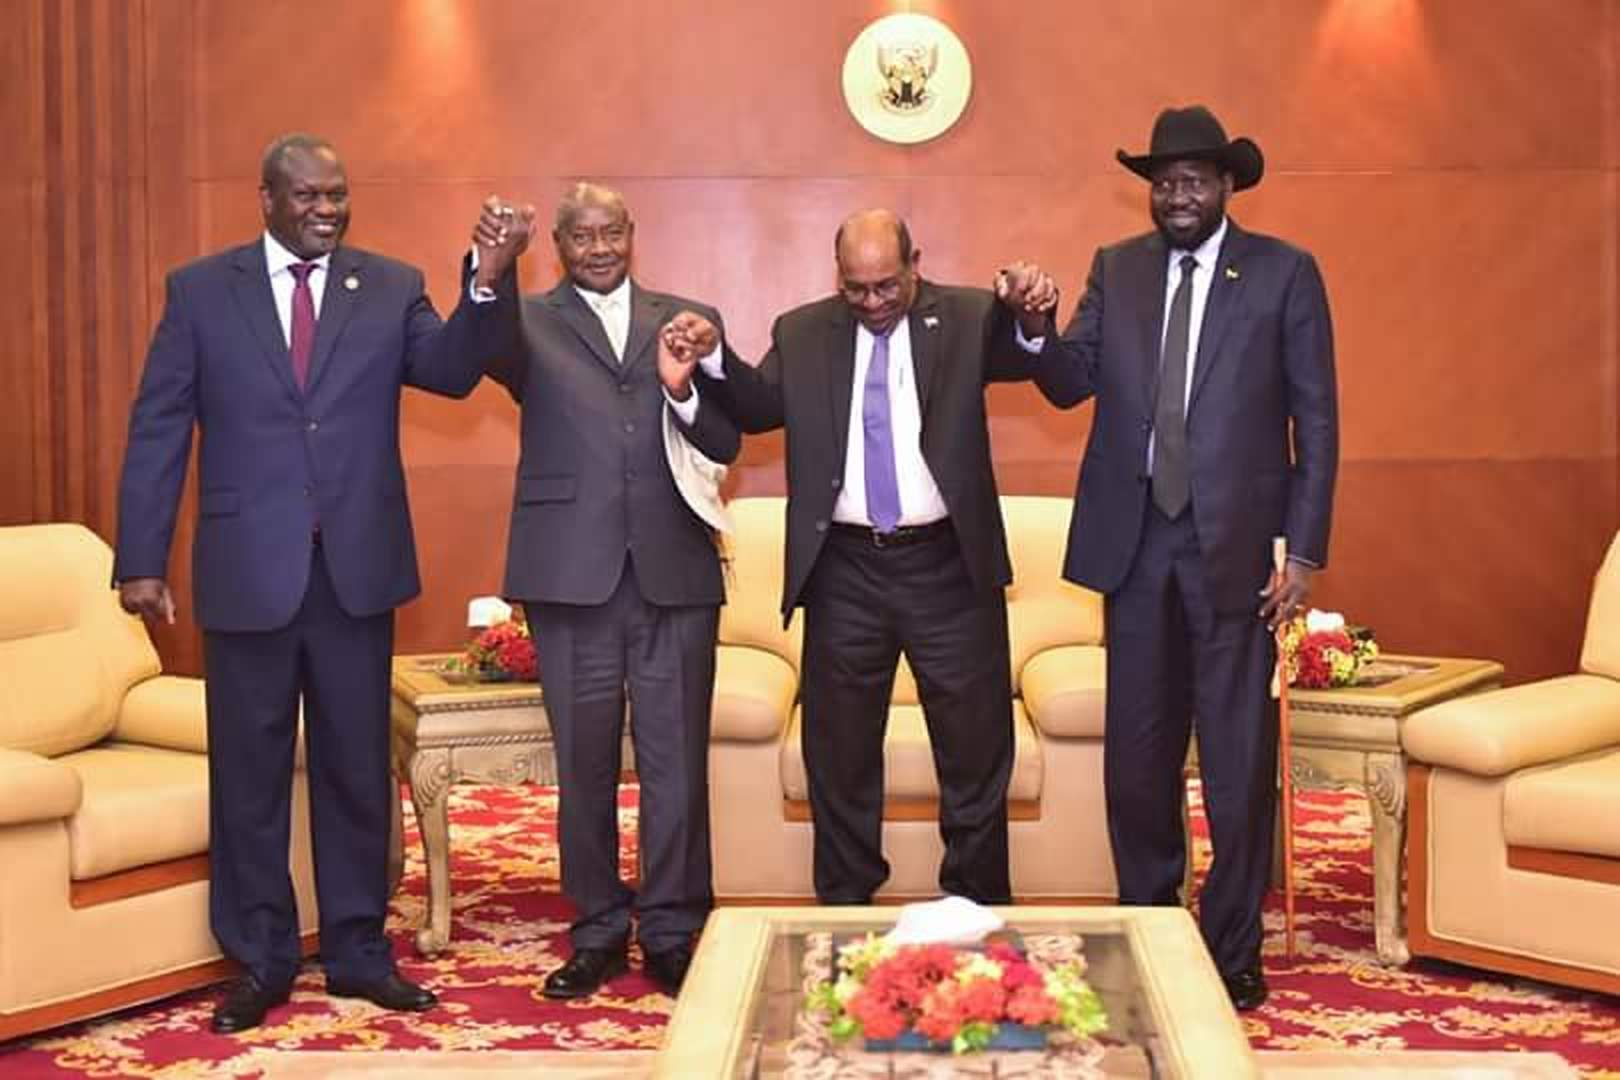 South Sudan President Salvar Kiir and Erieke Machar held a dialogue graced by Sudanese President Omer al-Bashir and Ugandan President Yoweri Museveni (PPU Photo)